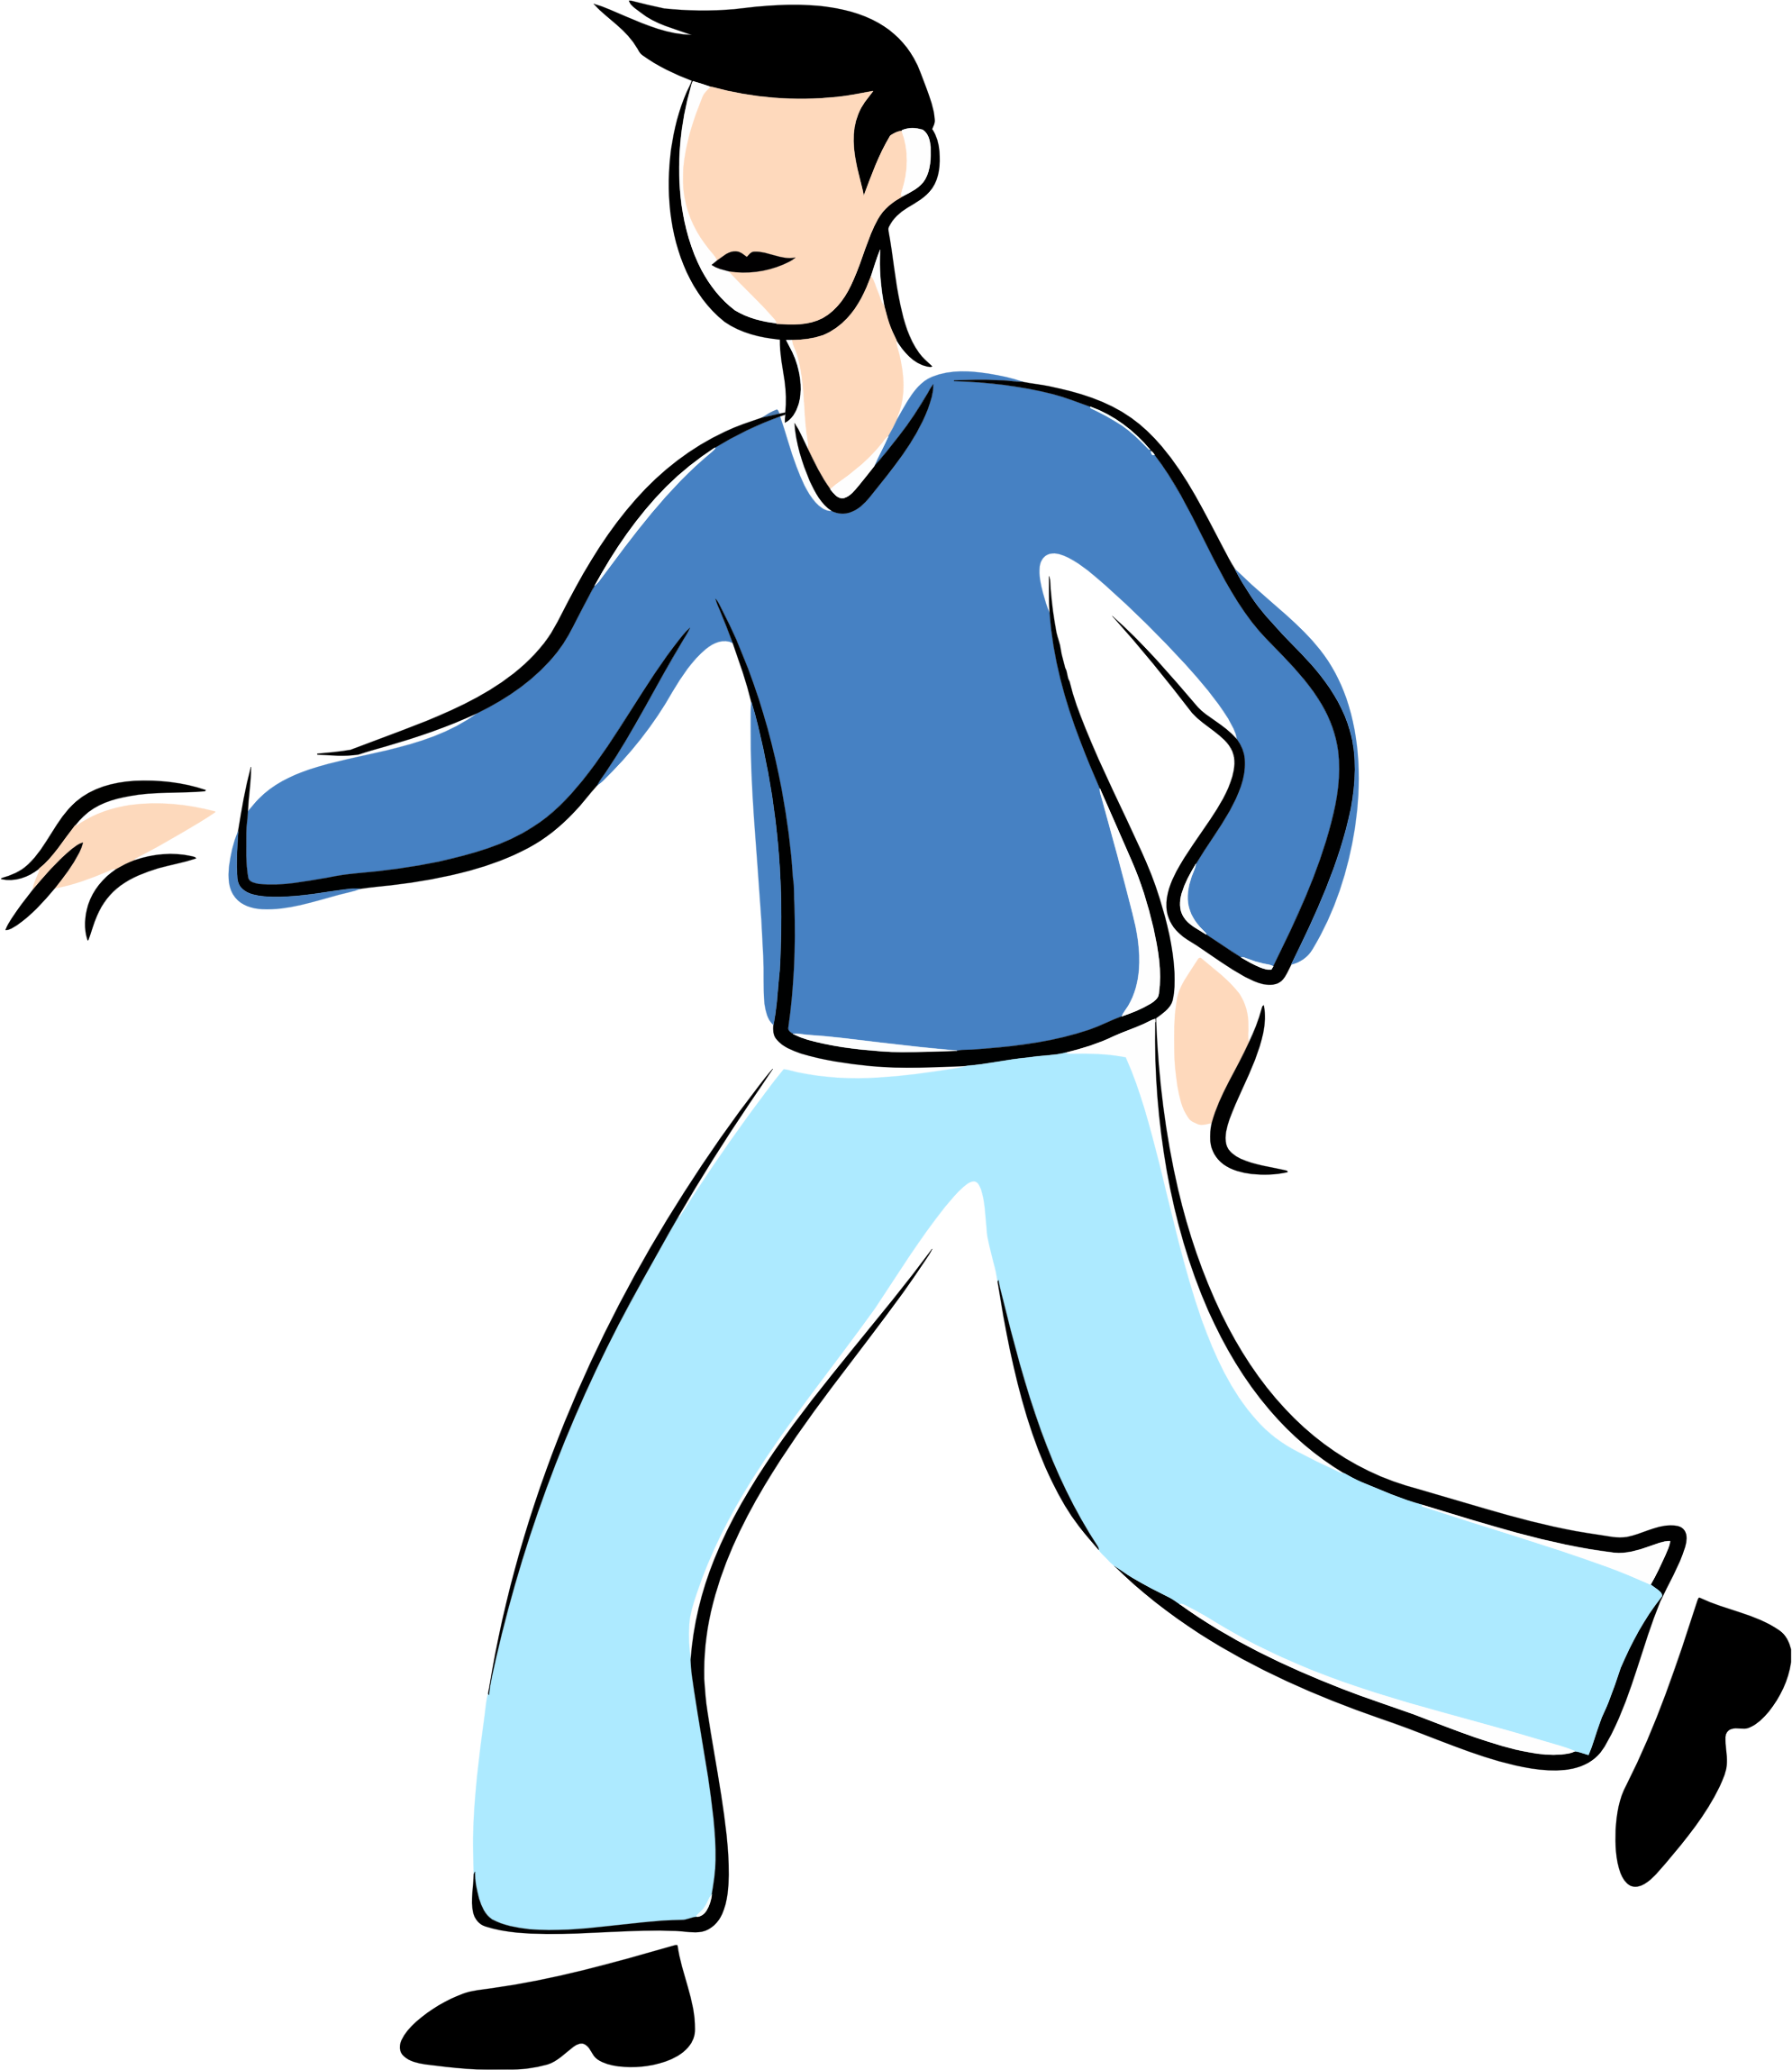 svg royalty free stock  collection of man. Person walking clipart